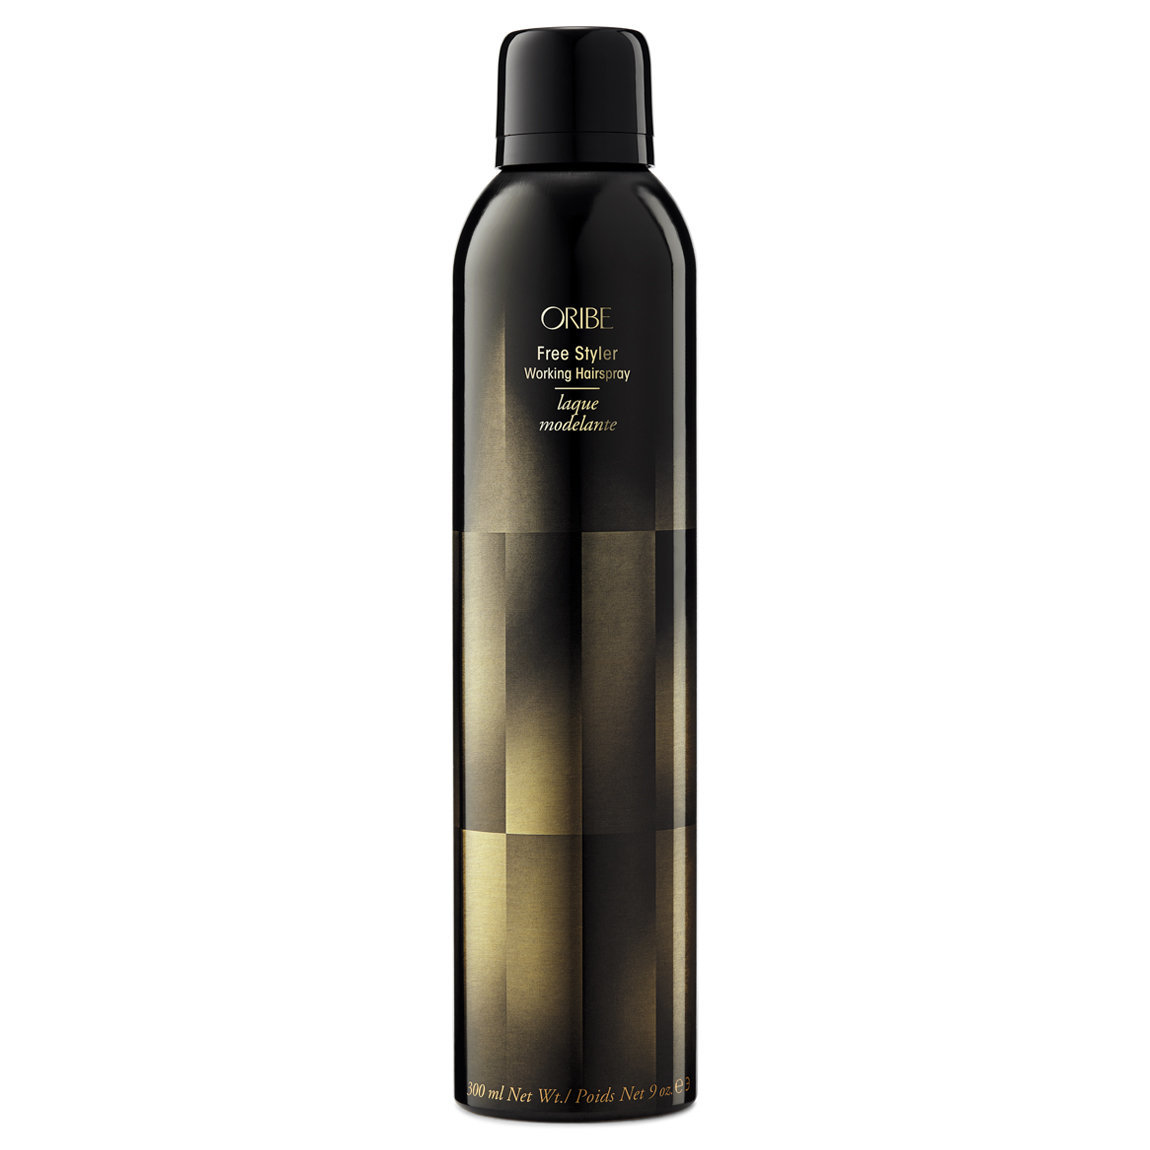 Oribe Free Styler Working Hairspray 9 oz product swatch.